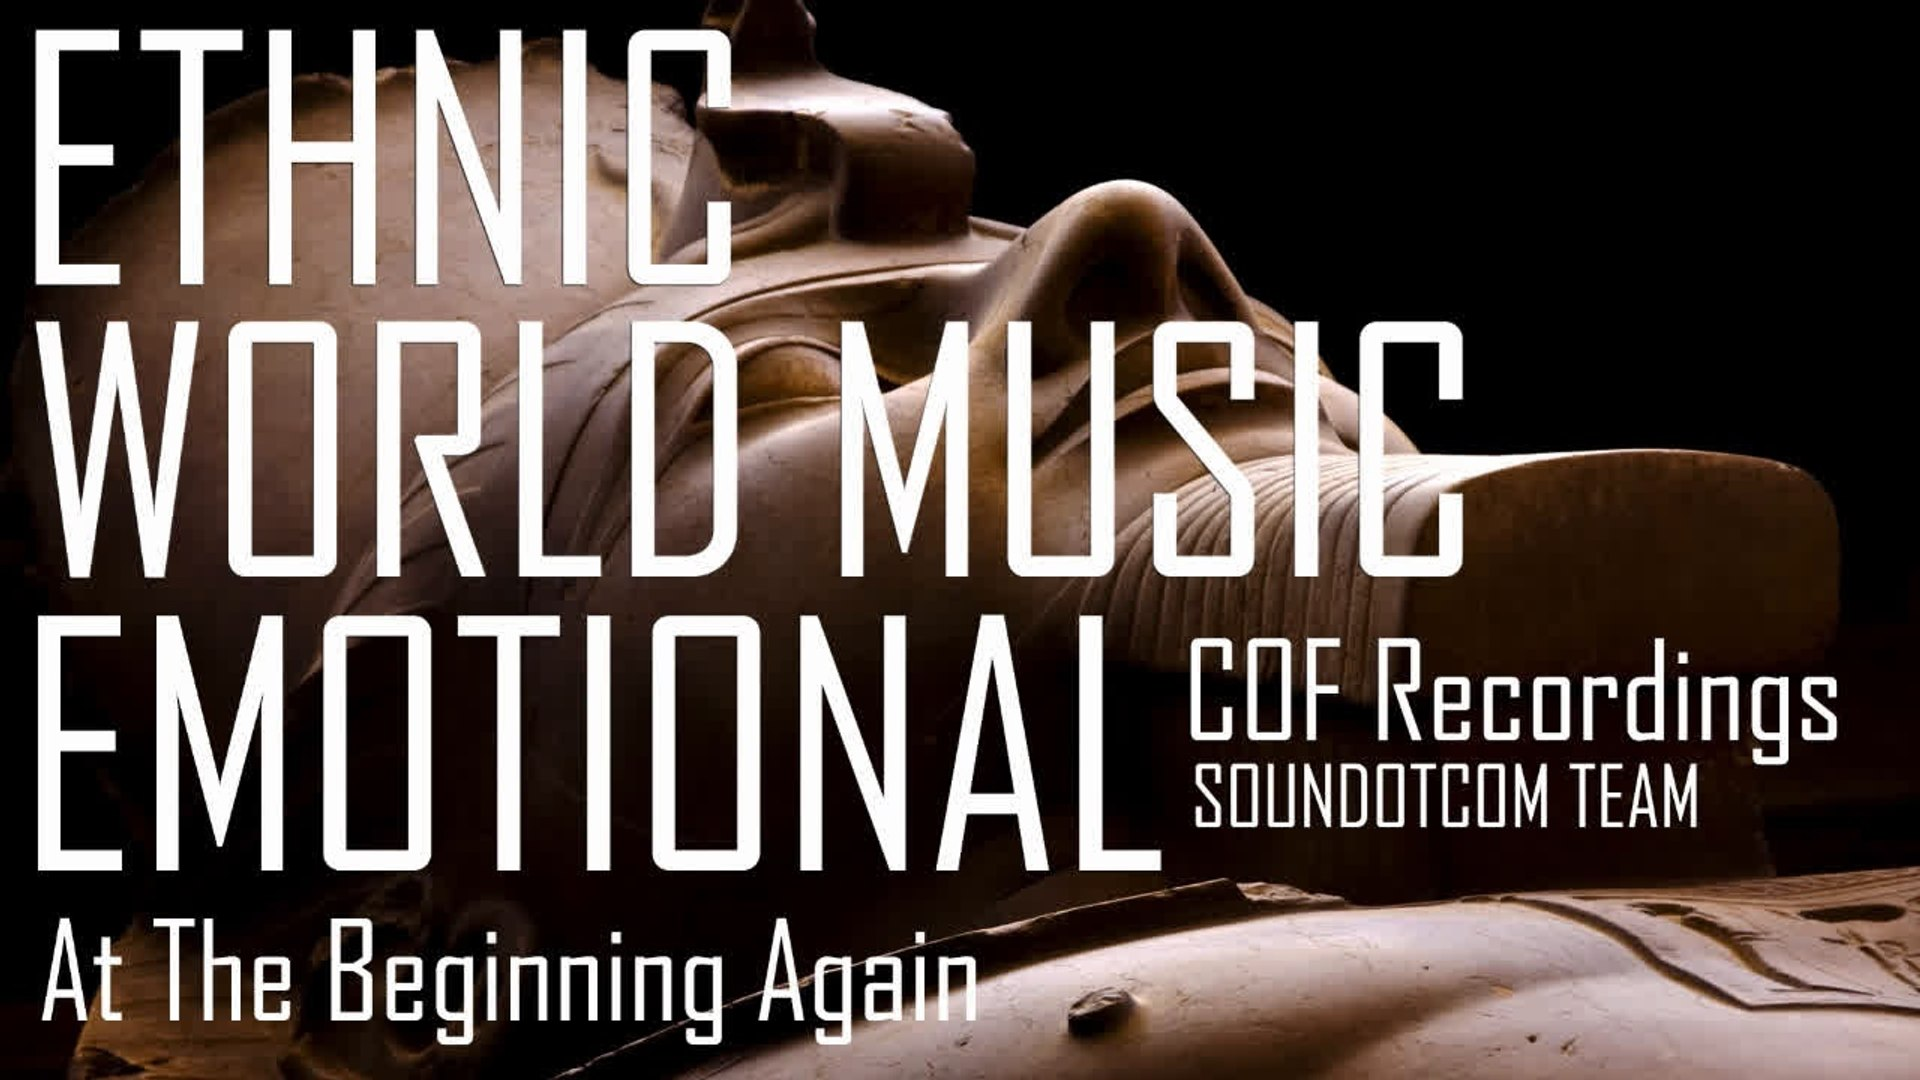 Royalty Free Music DOWNLOAD - World Music Ethnic Documentary | At The Beginning Again